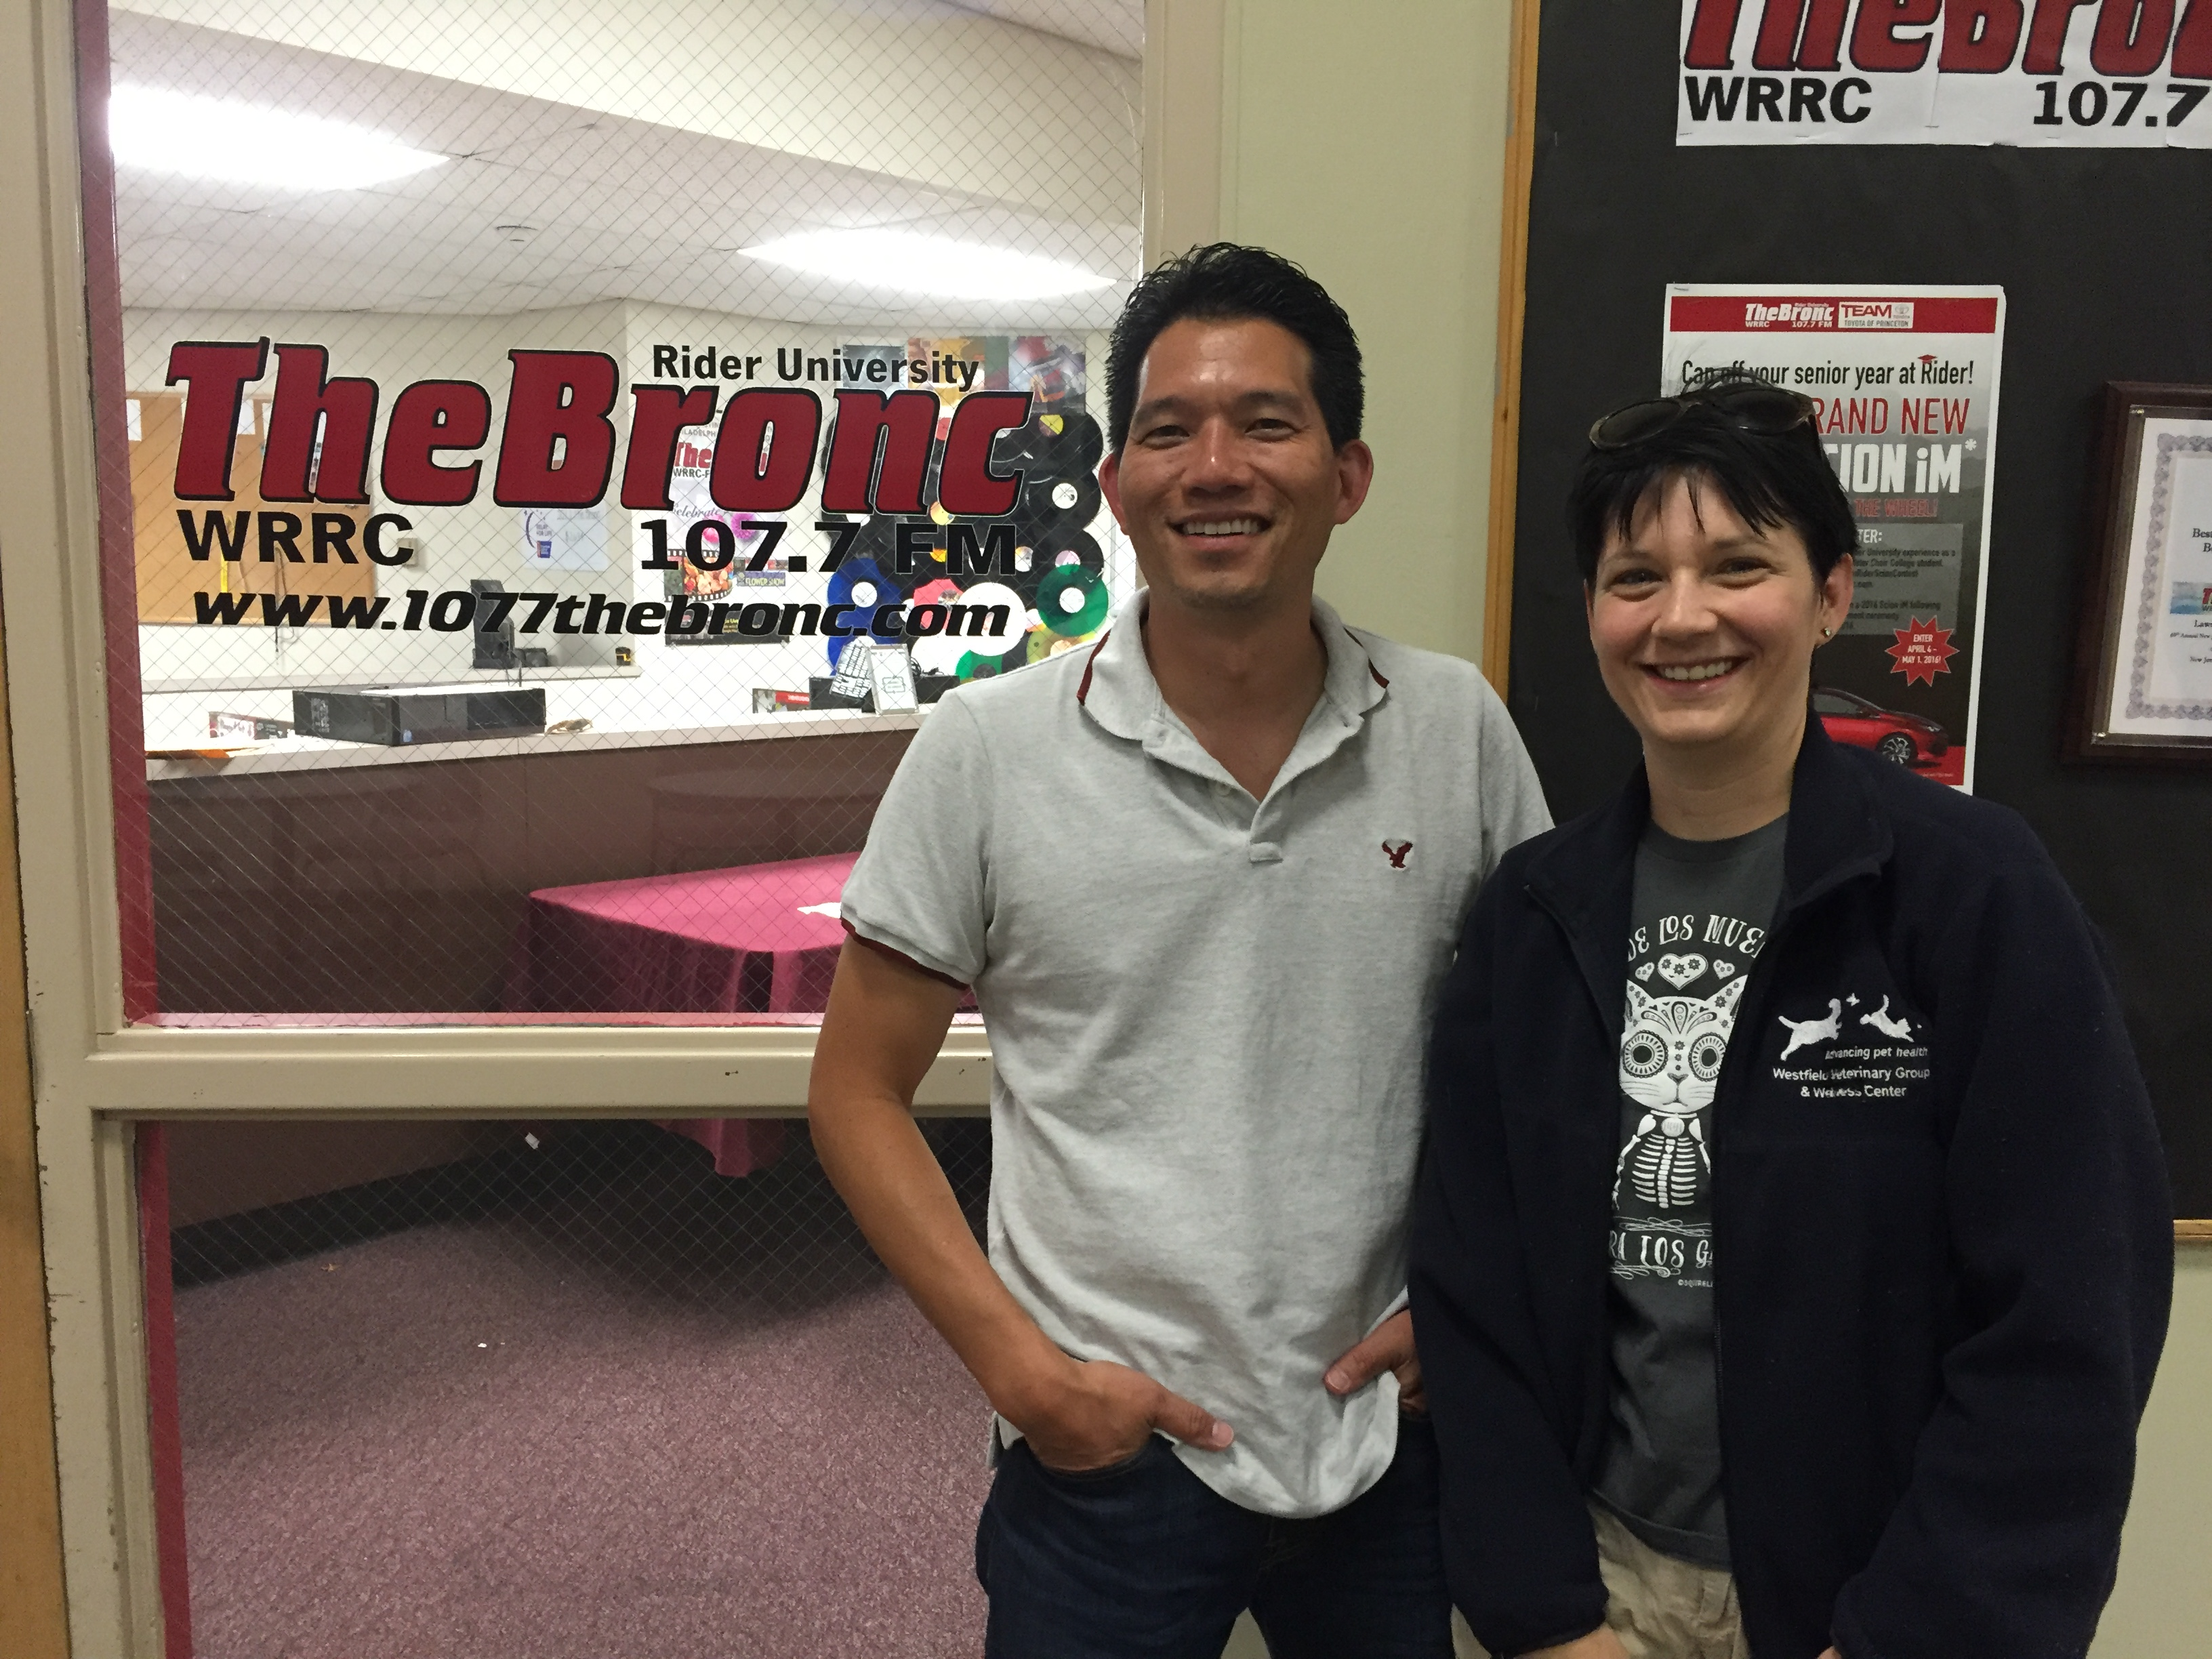 September 17, 2016 – Melissa Conley from Westfield Veterinary Group joined us in studio today!